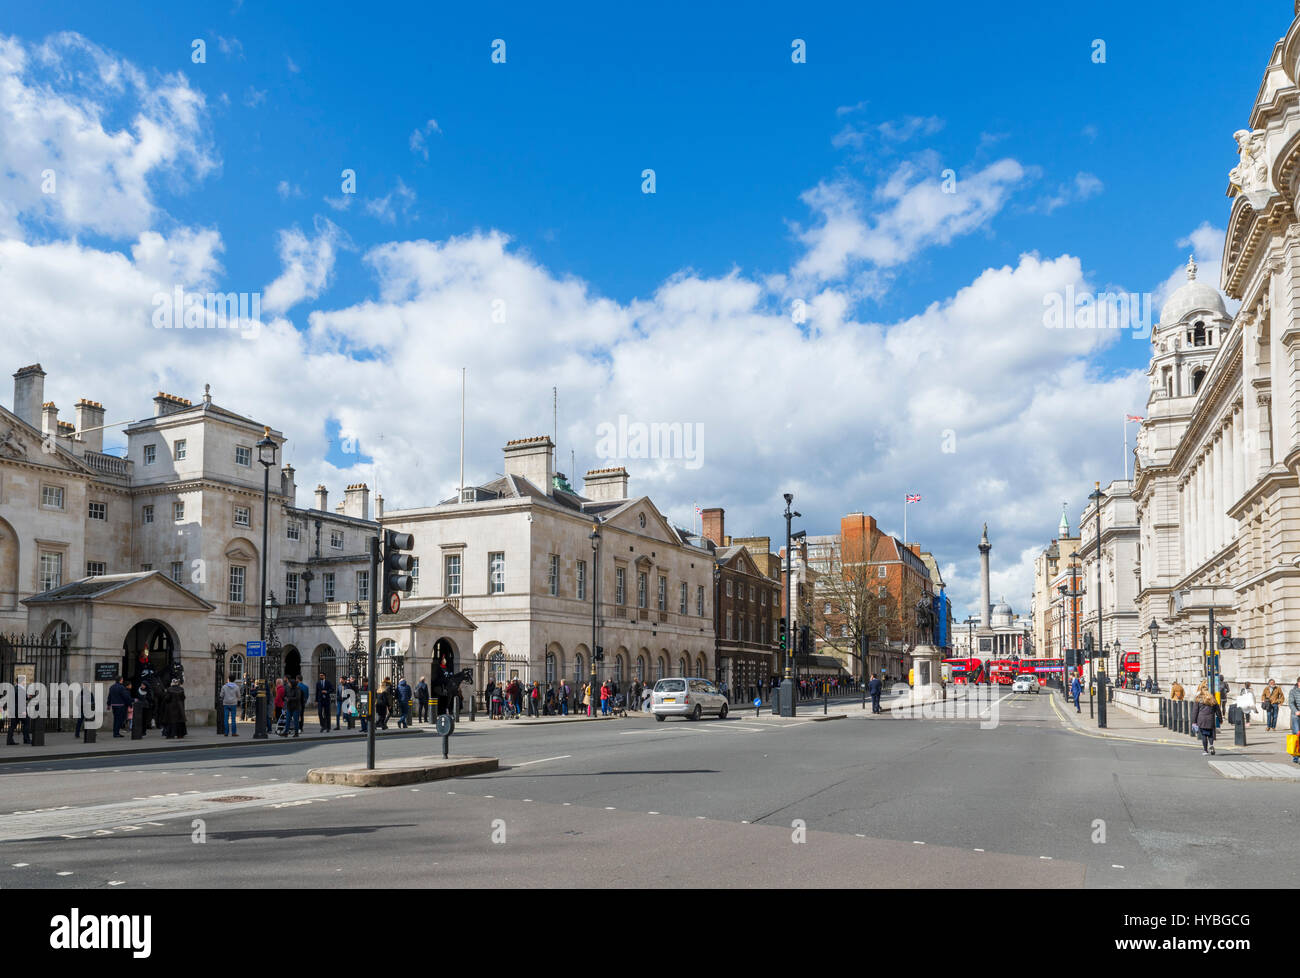 Whitehall, London. View down Whitehall with the Horse Guards building to the left and Nelson's Column in the - Stock Image